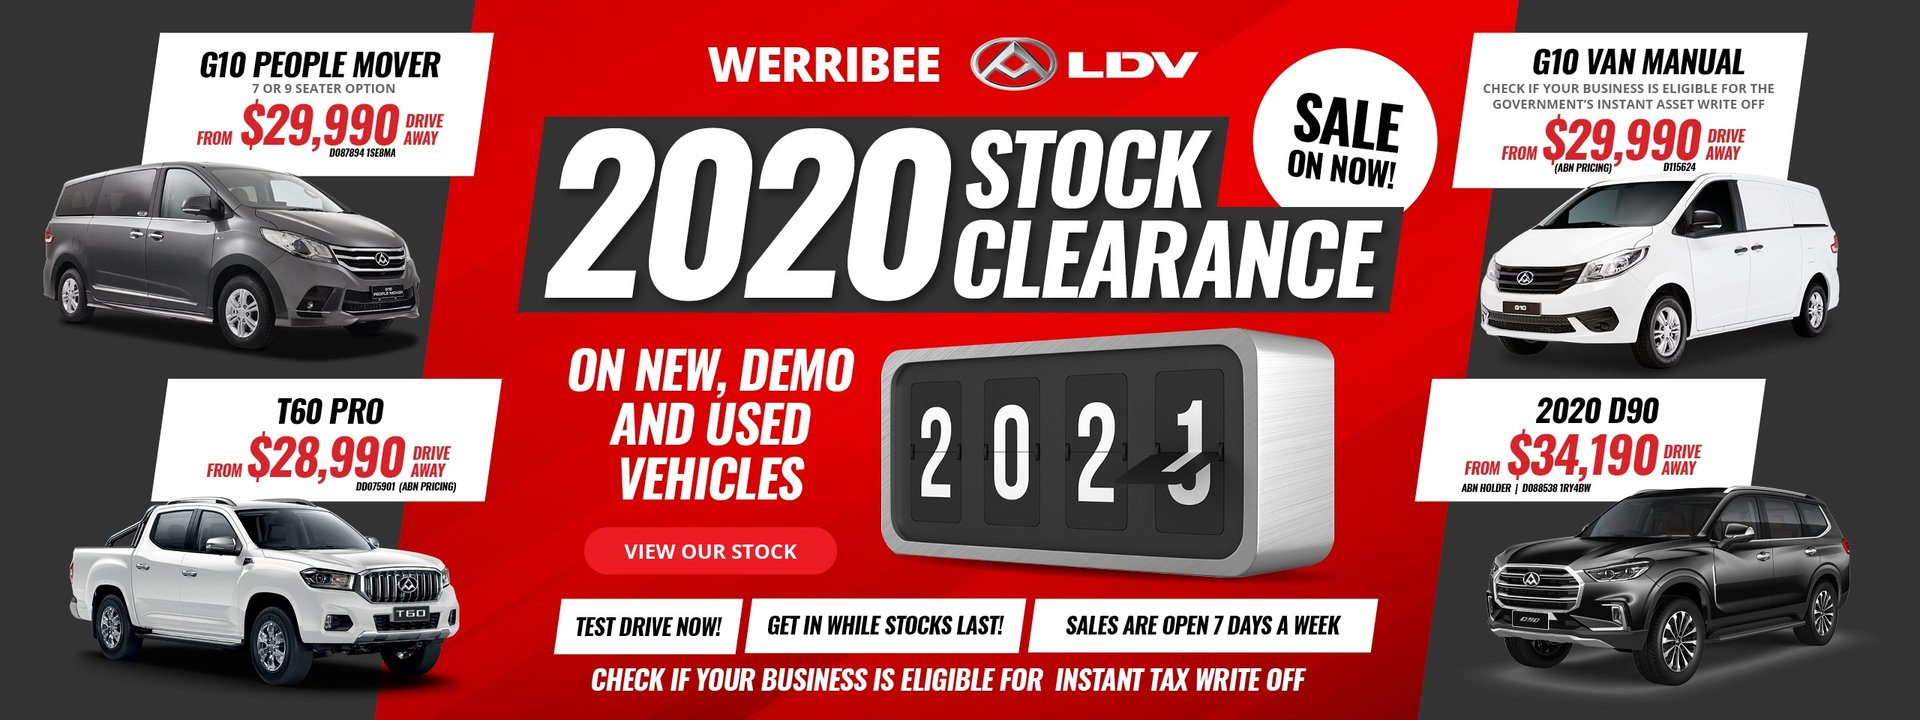 Werribee LDV - Stock Clearance